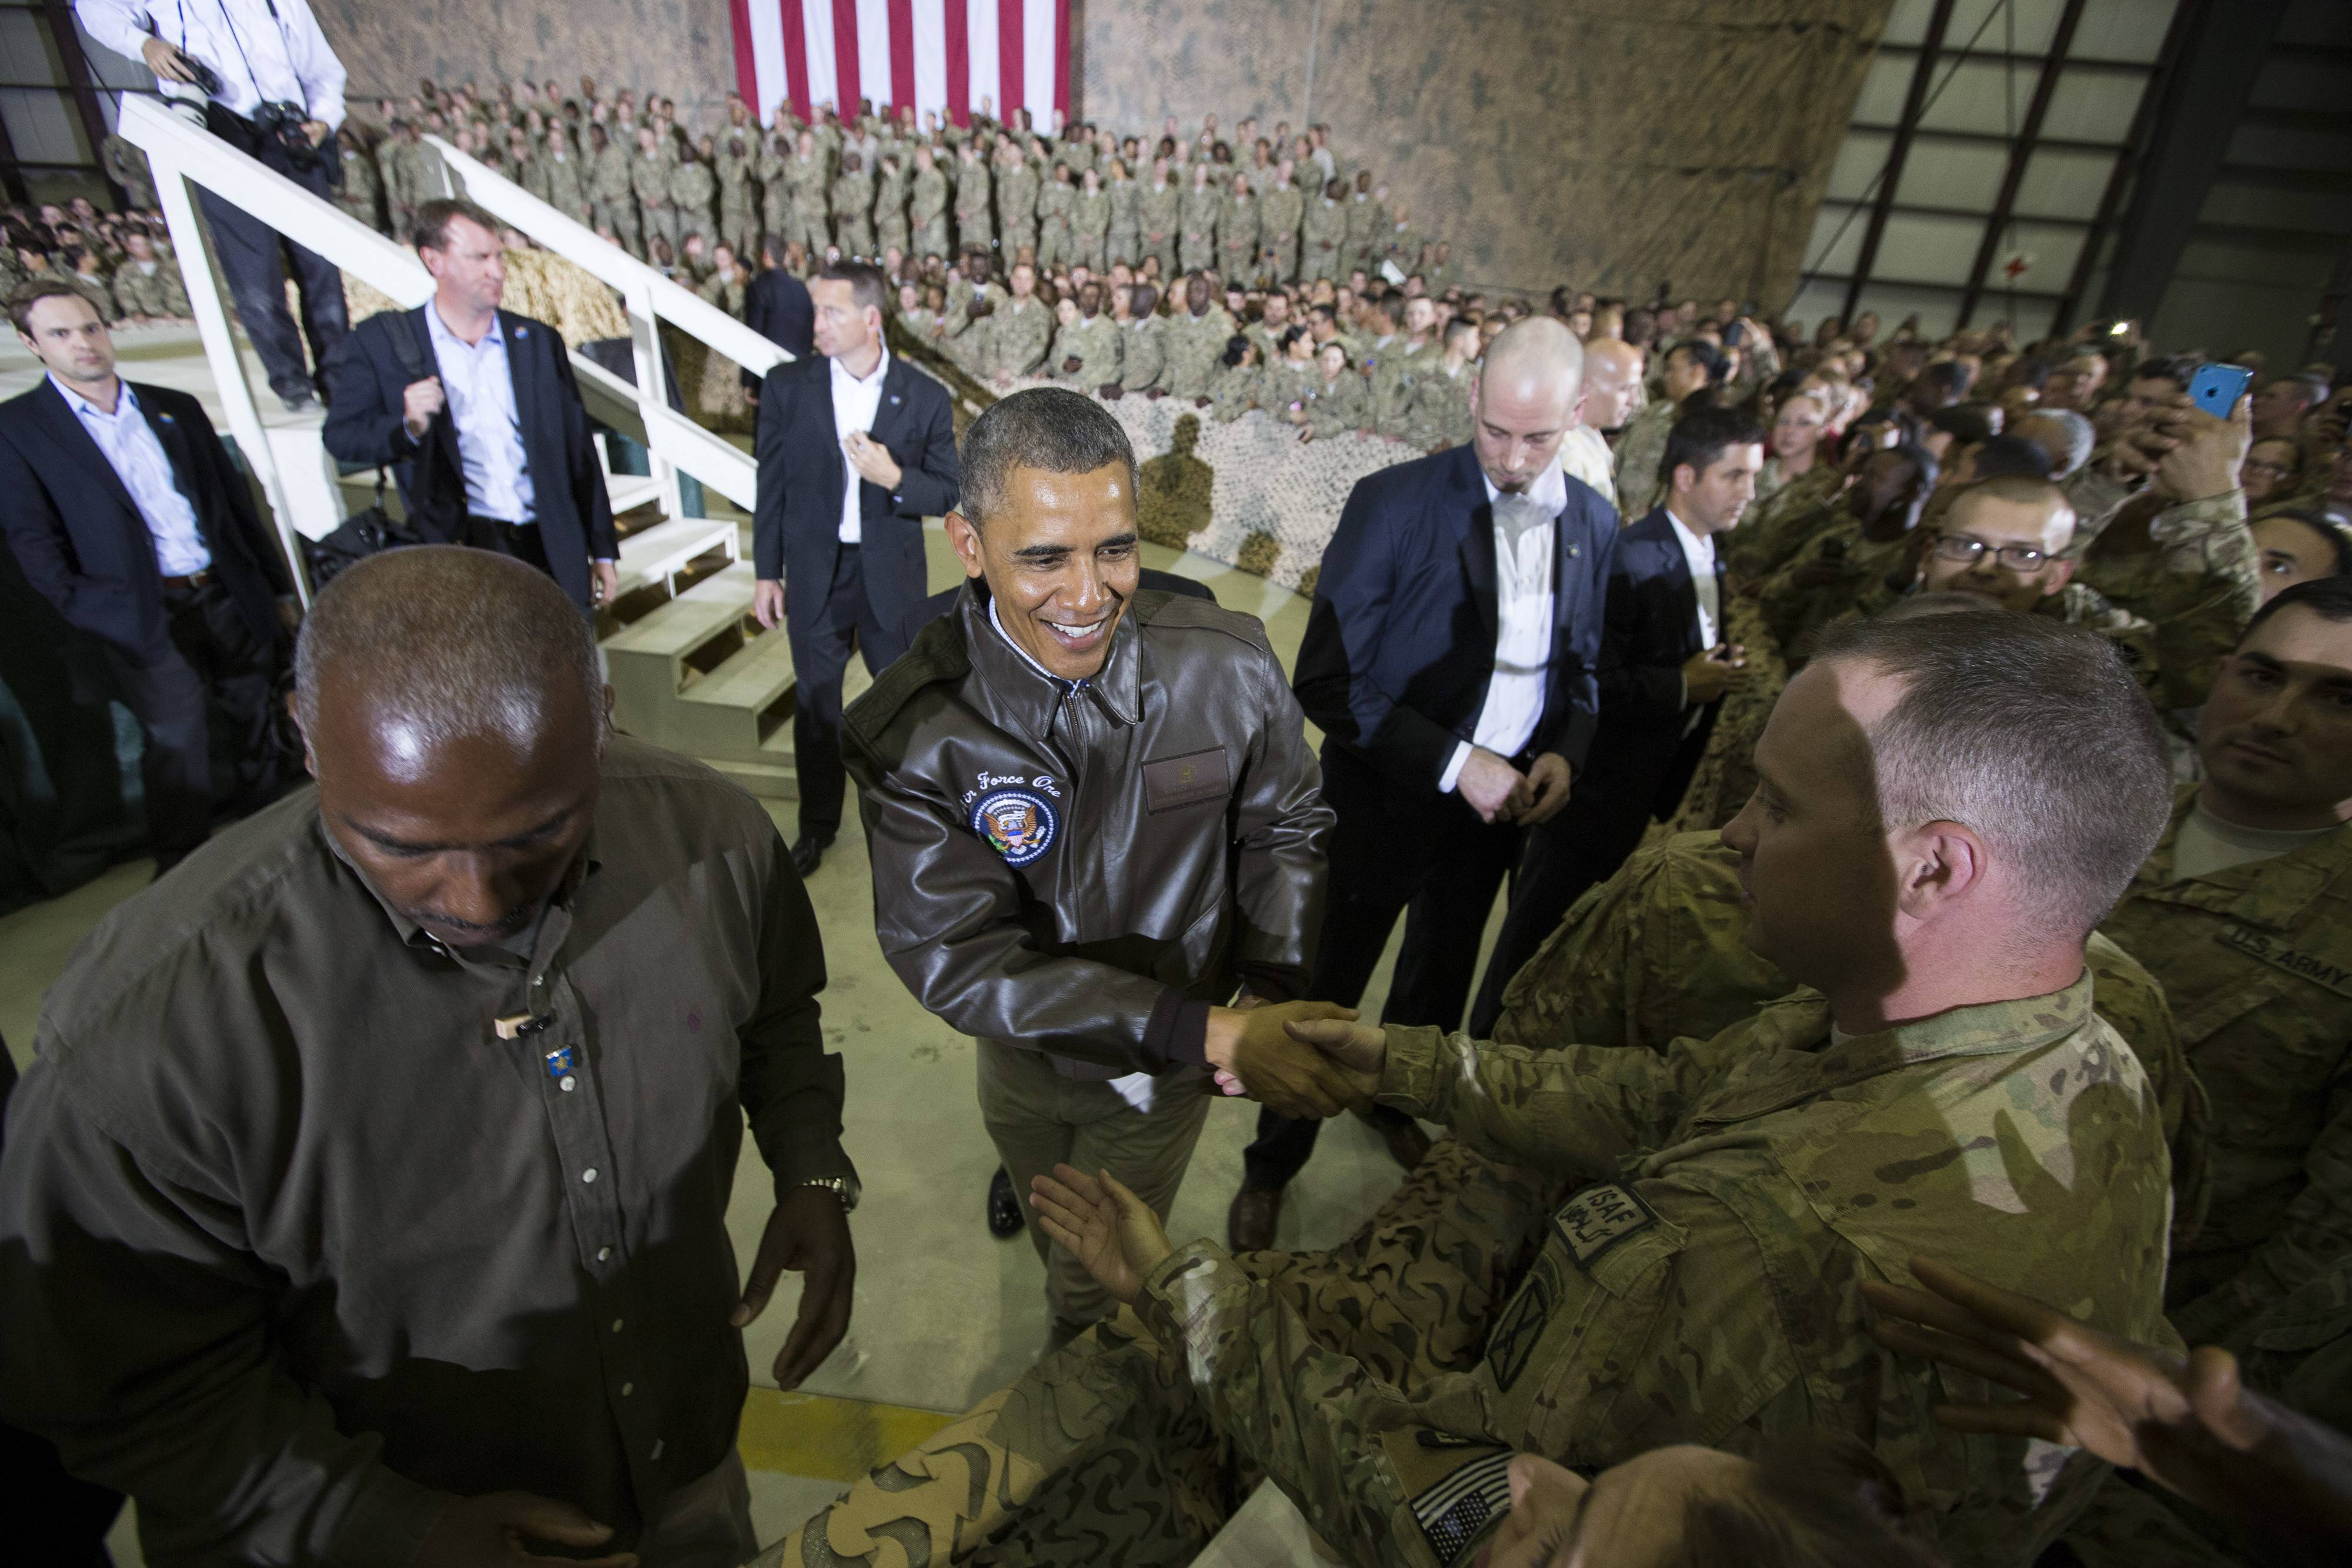 President Barack Obama shakes hands at a troop rally at Bagram Air Field, north of Kabul, Afghanistan.